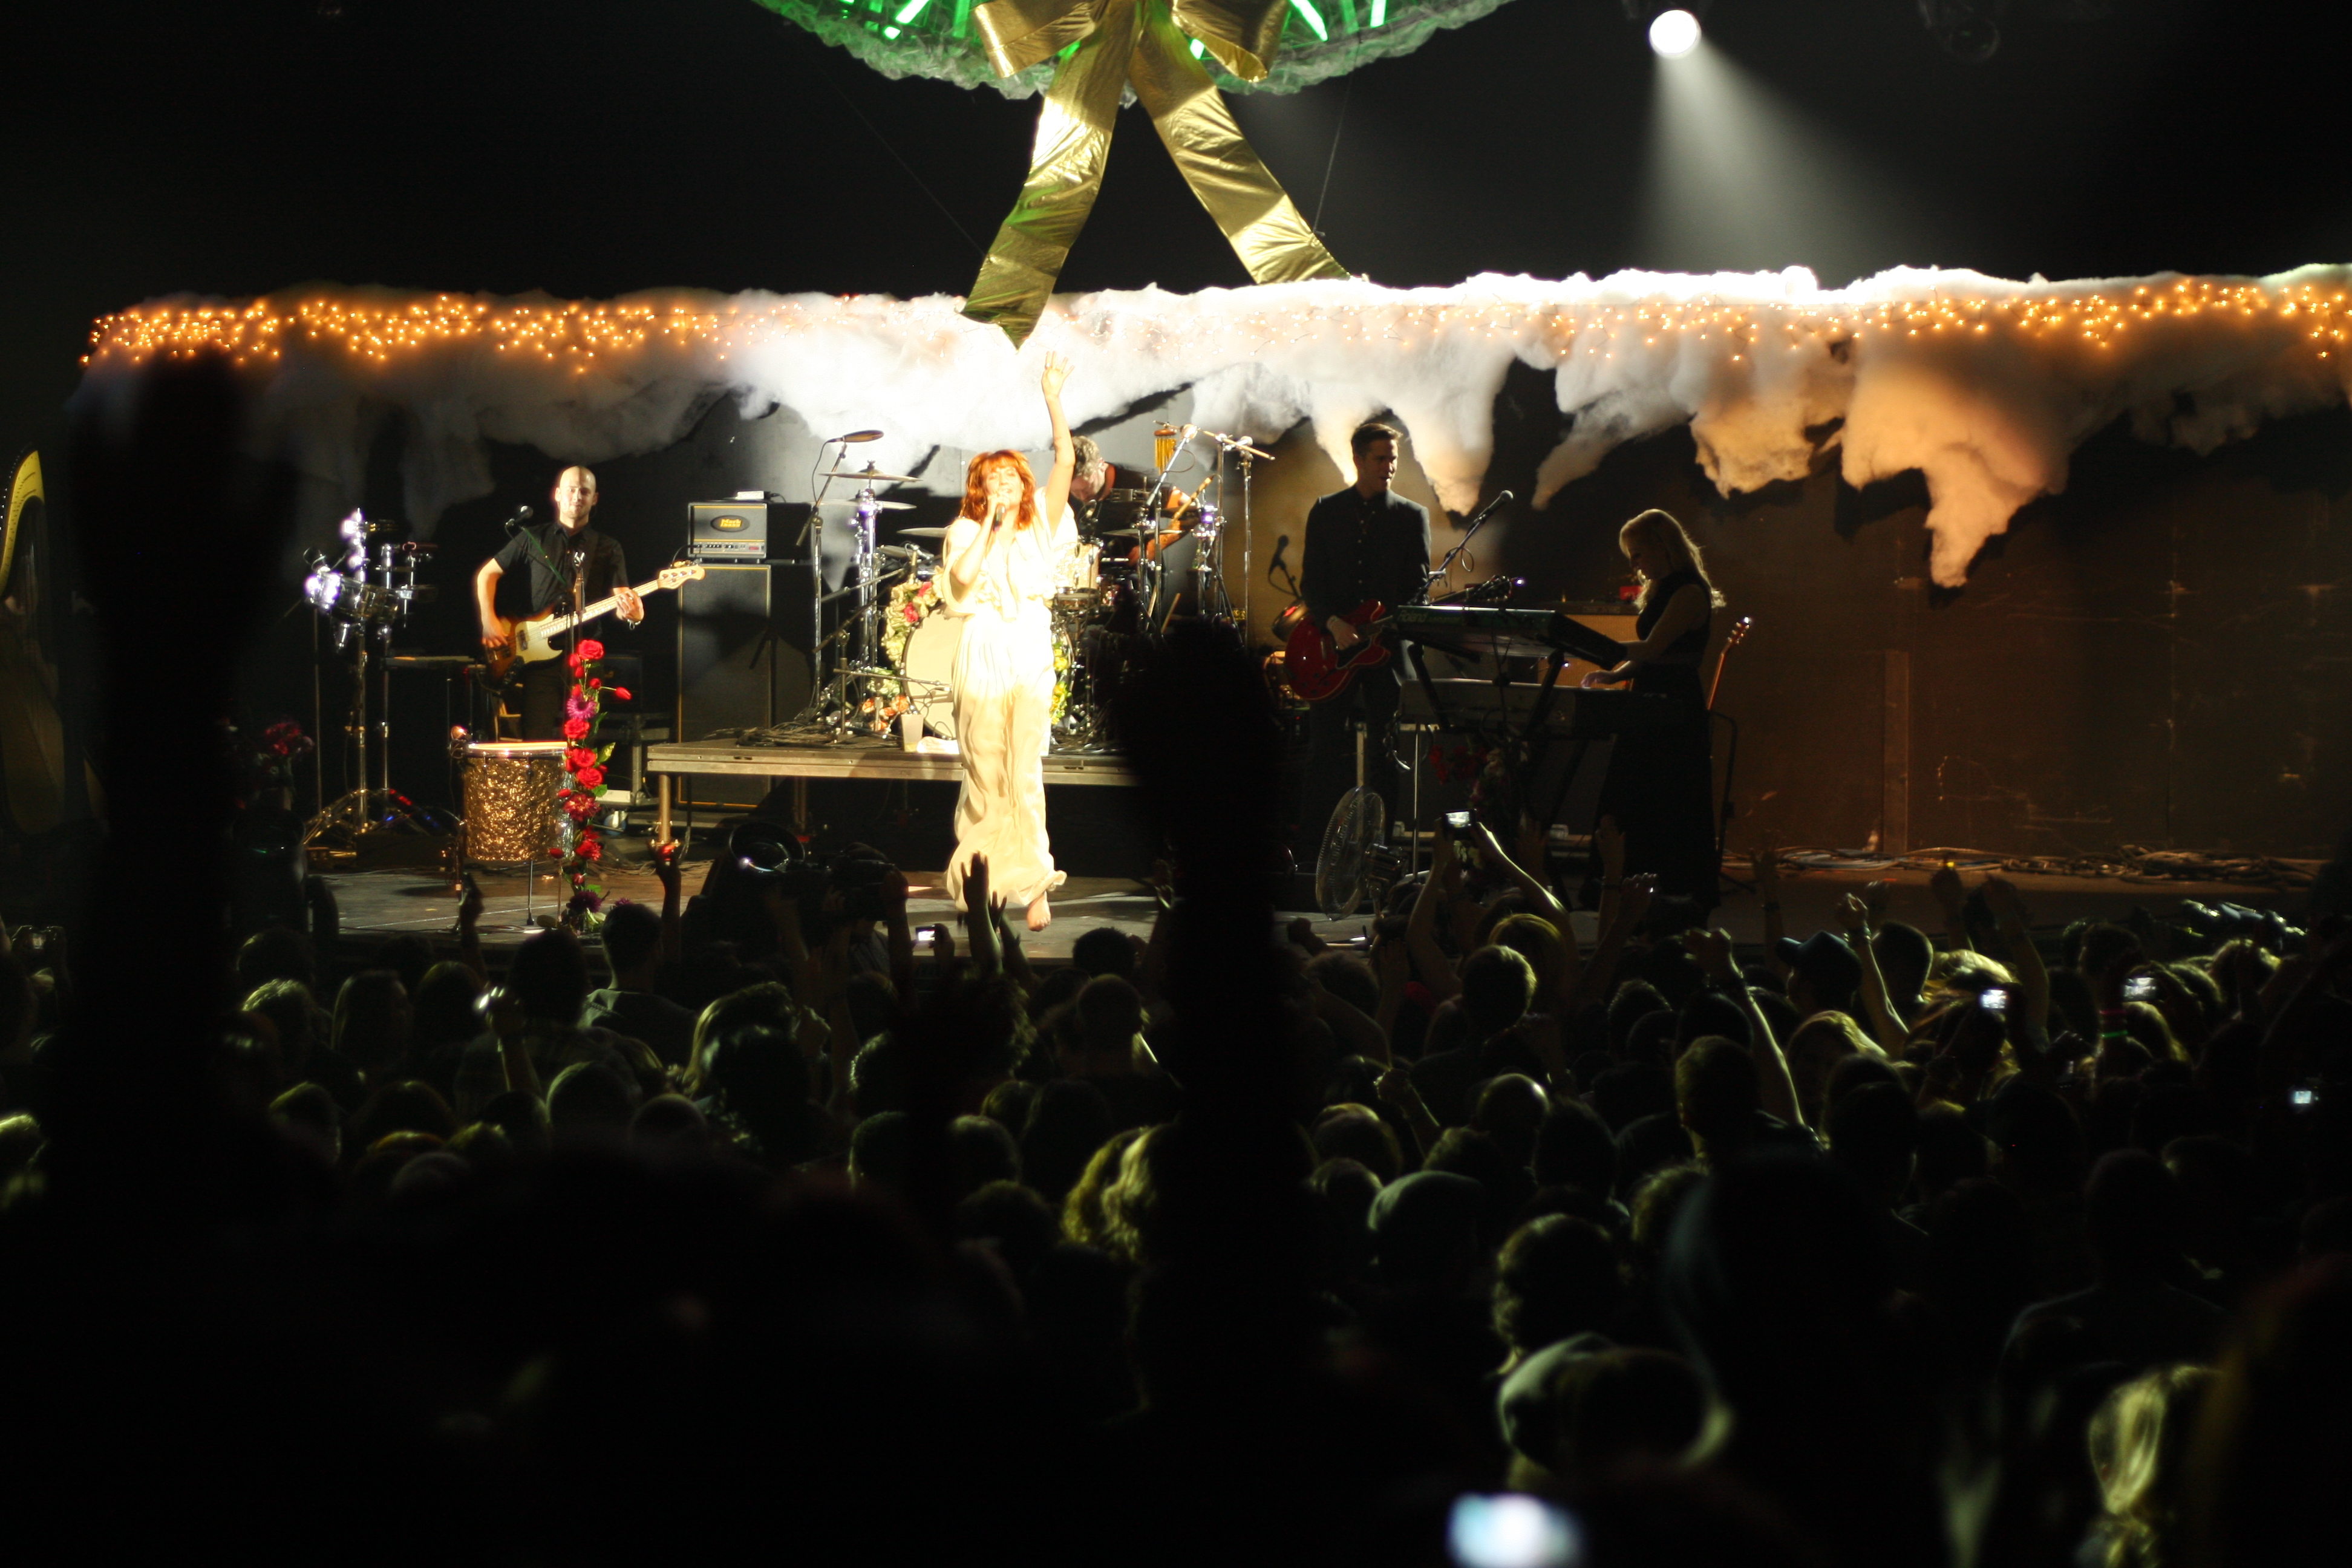 Kroq Almost Acoustic Christmas.File Kroq Almost Acoustic Xmas Florence And The Machine 33